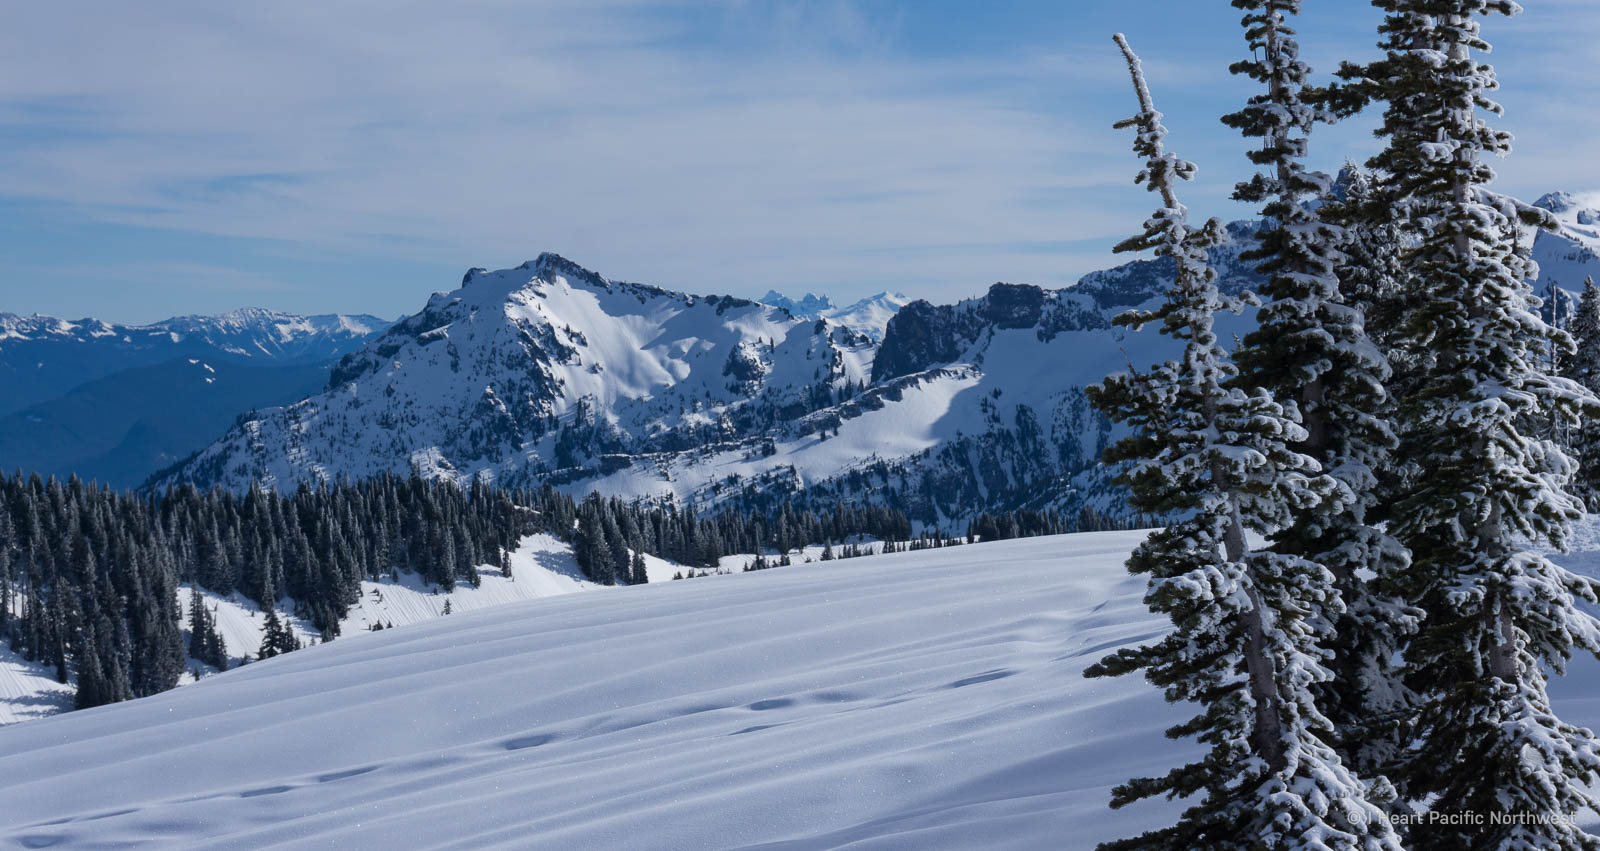 Mount Rainier winter backpacking trip